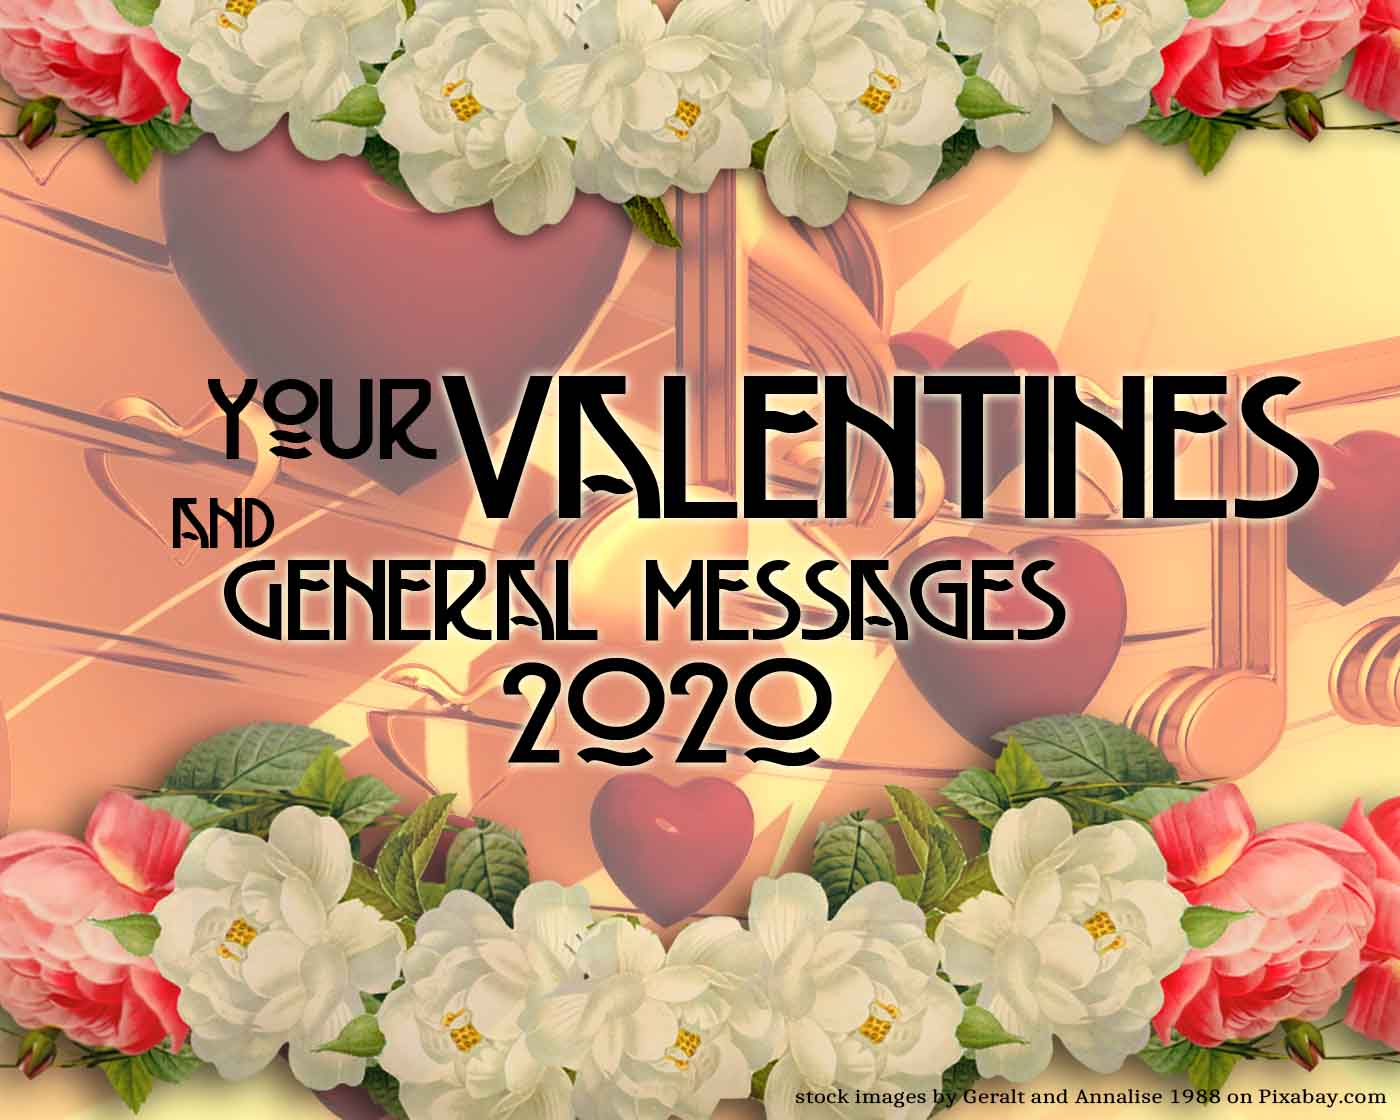 General Valentines and Love Messages 2020